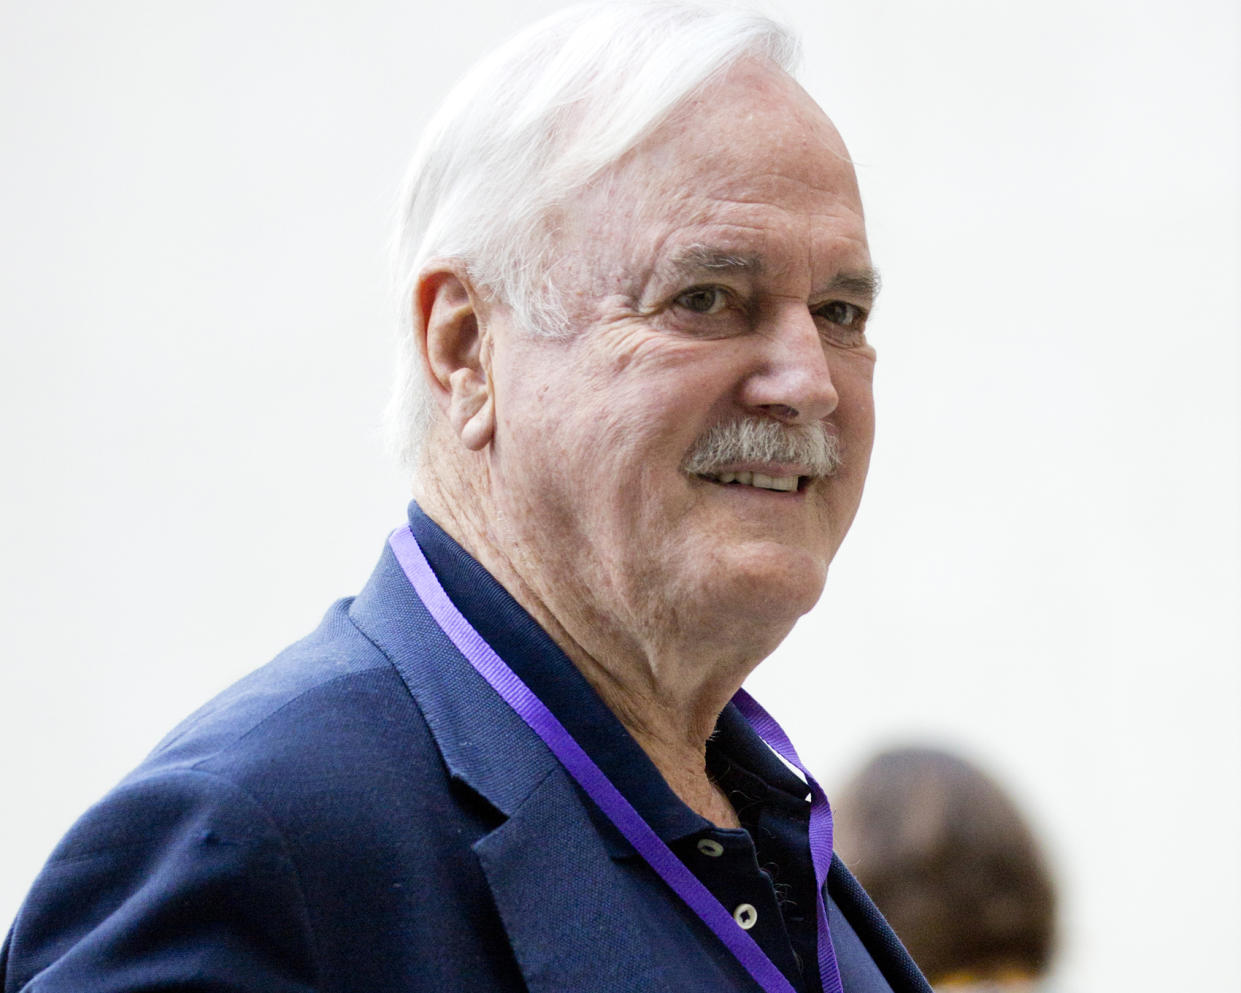 Actor John Cleese arriving at BBC Broadcasting House ahead of his appearance on The One Show in London. (Photo by Isabel Infantes/PA Images via Getty Images)